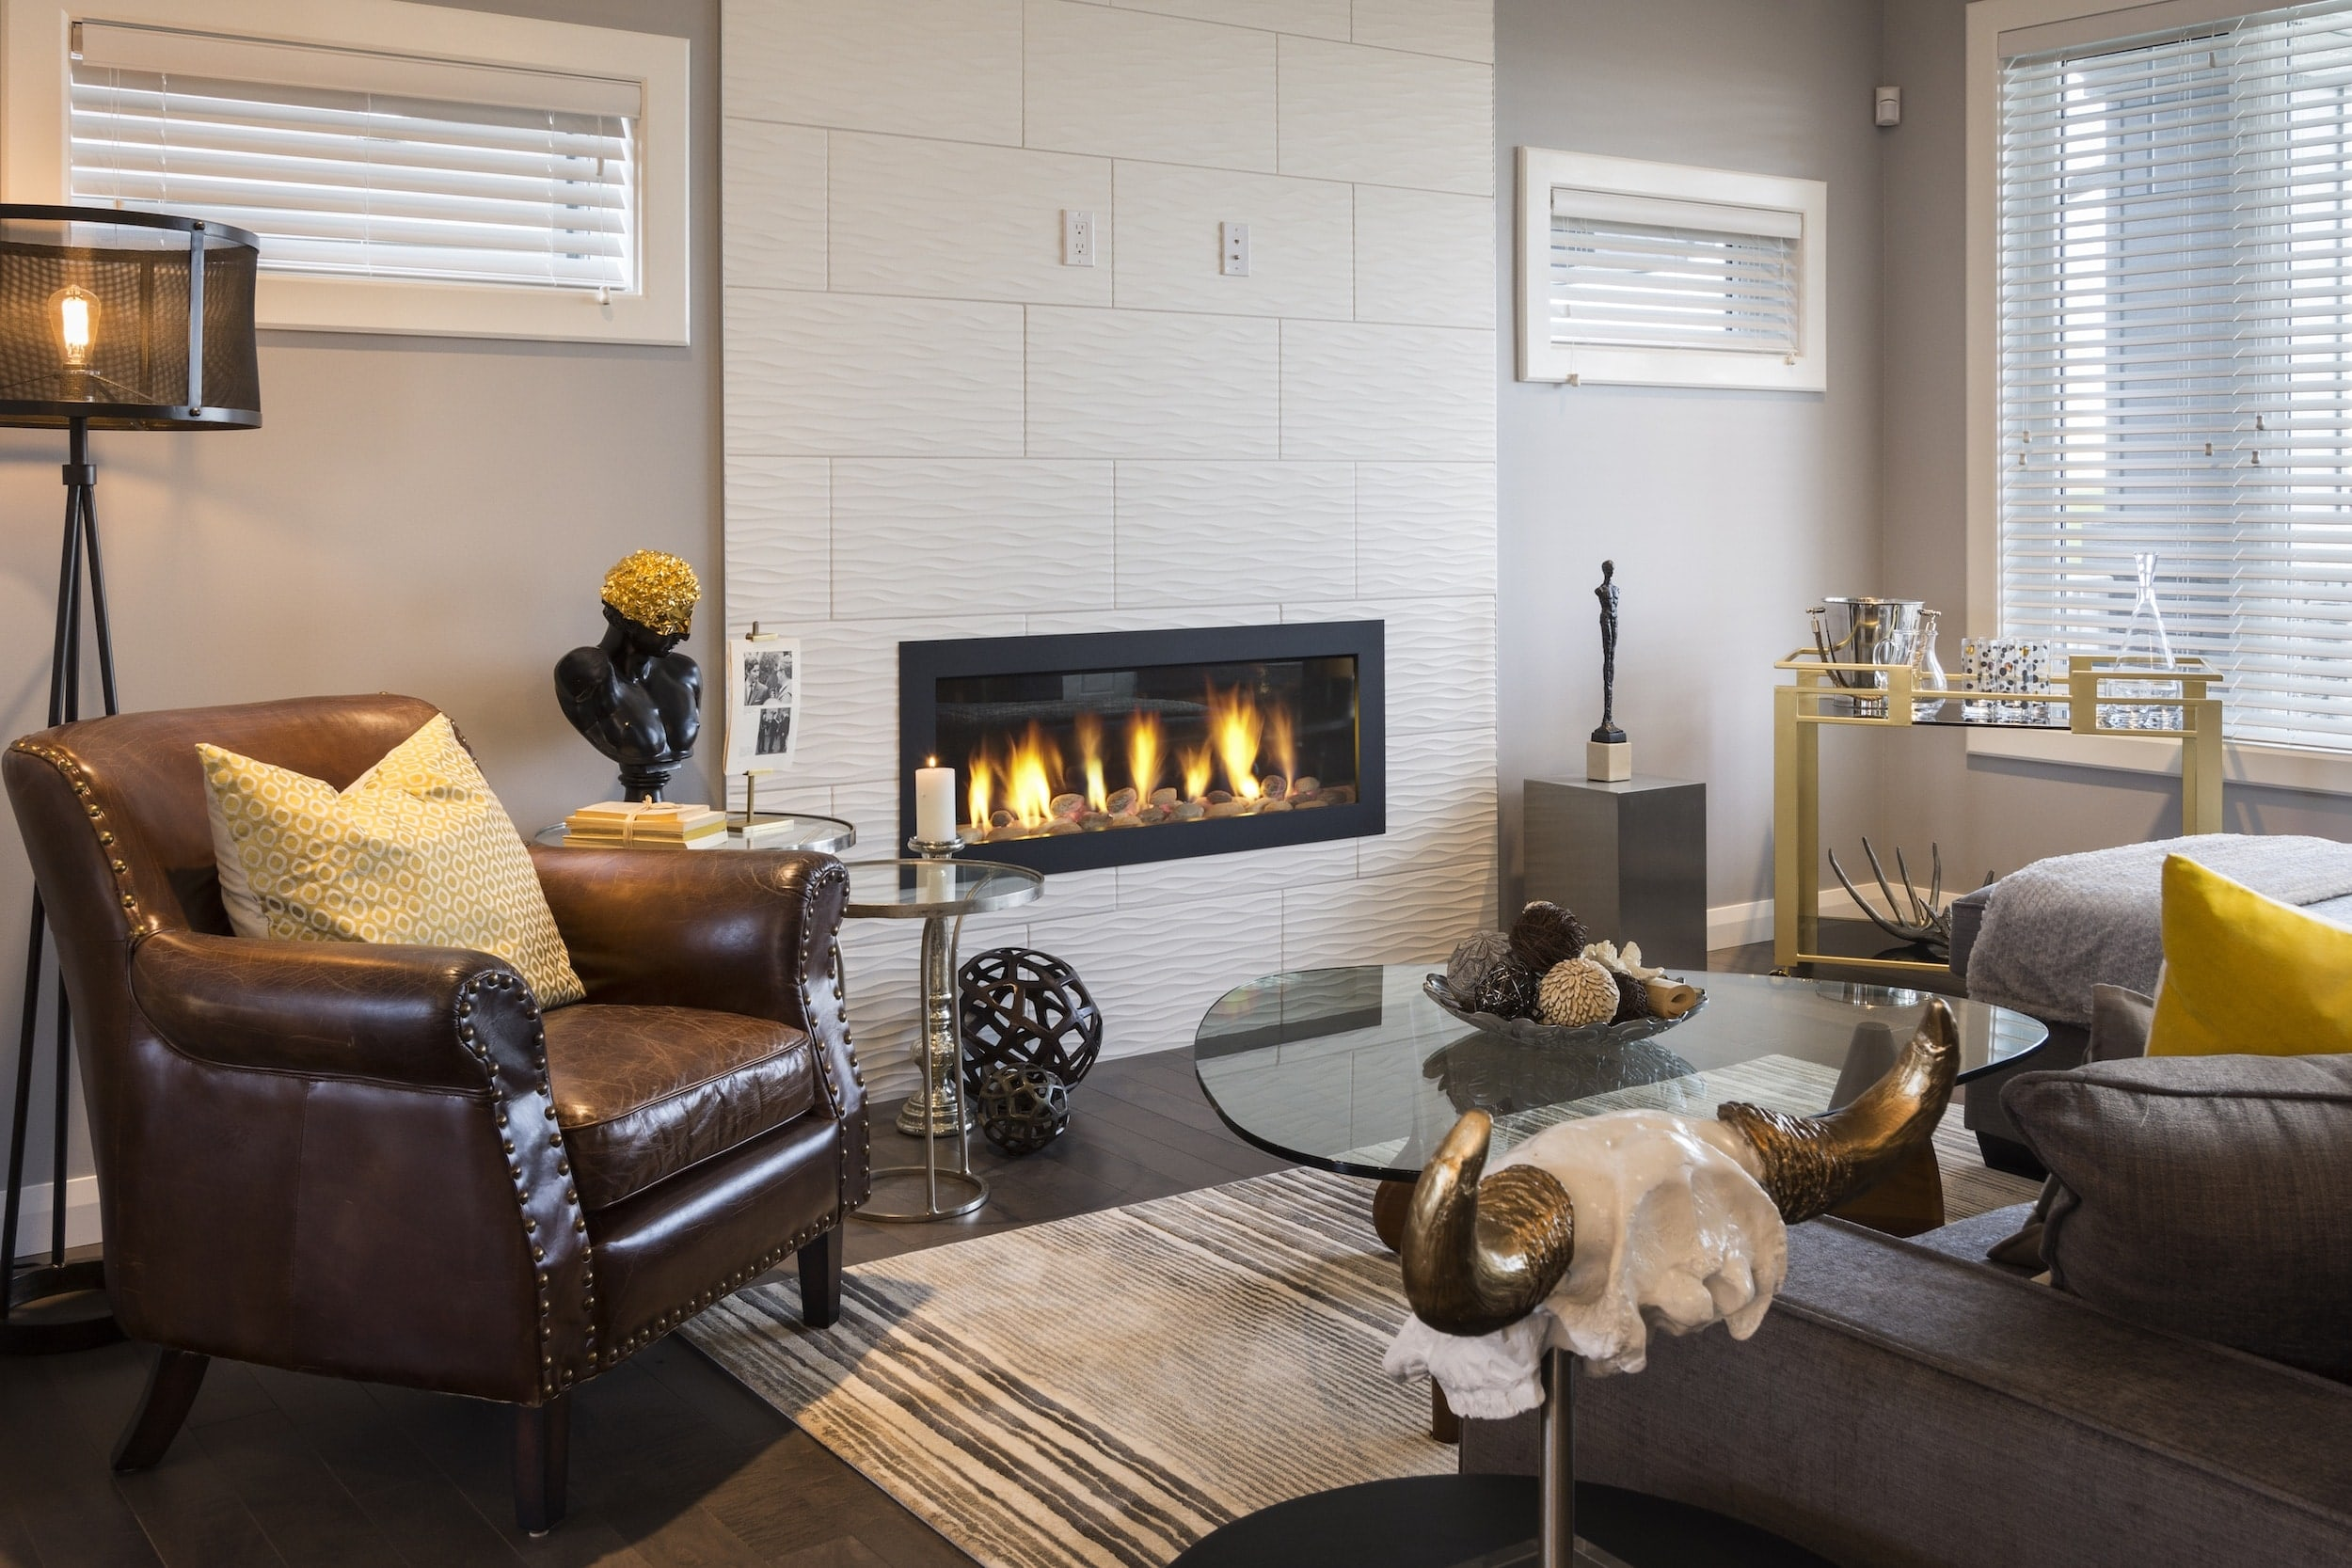 The Laurier III by Broadview Homes is Ravenswood's Award Winning Home